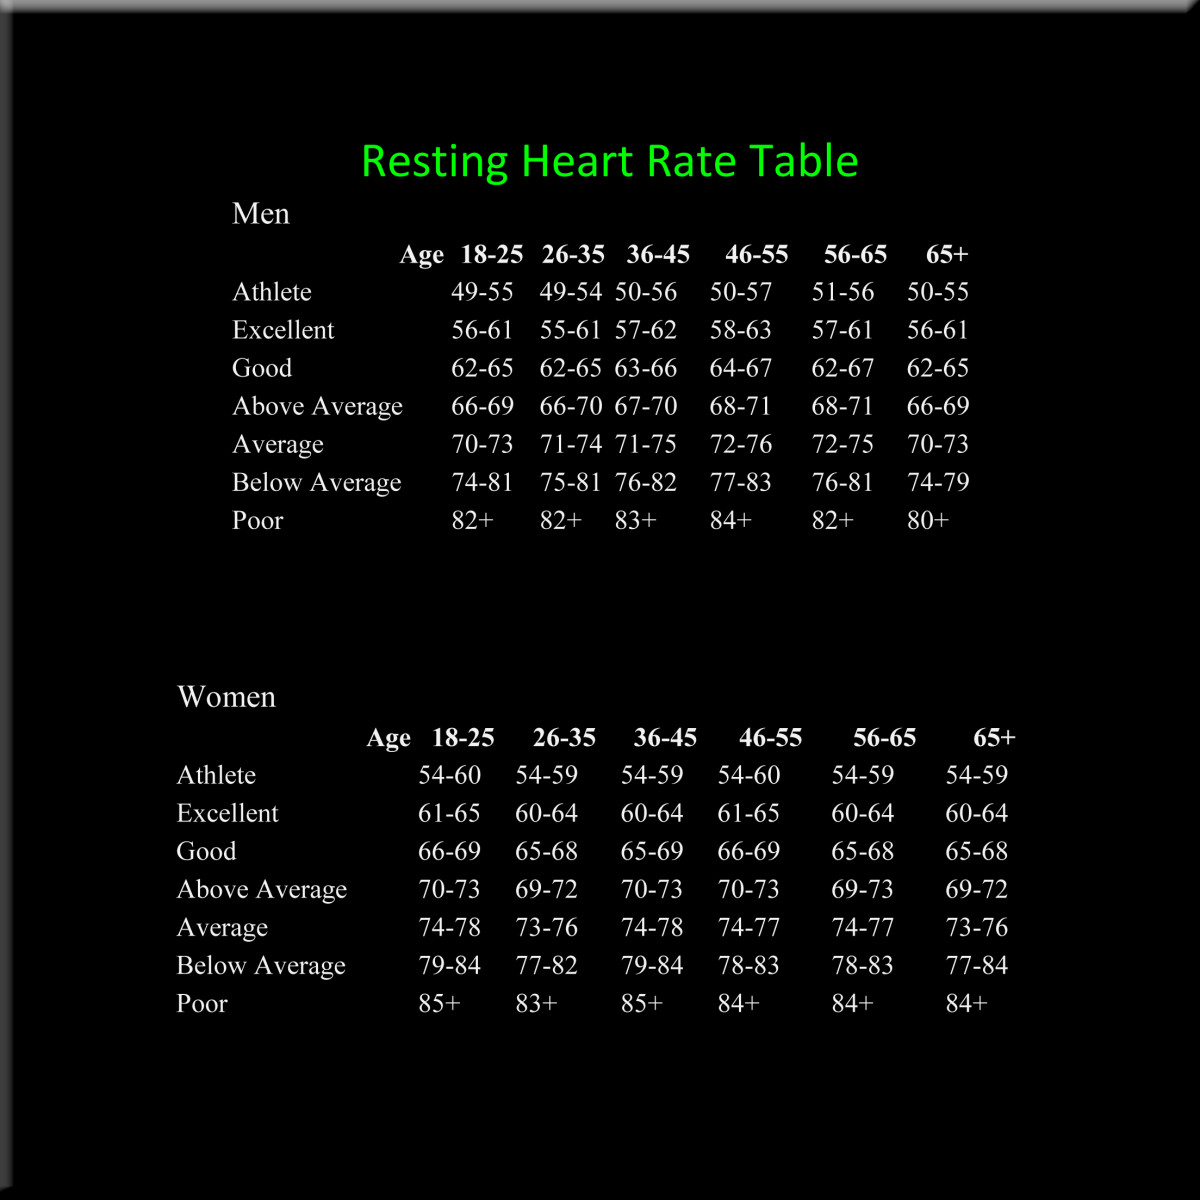 Resting Heart Rate Table with black background, white print and green heading